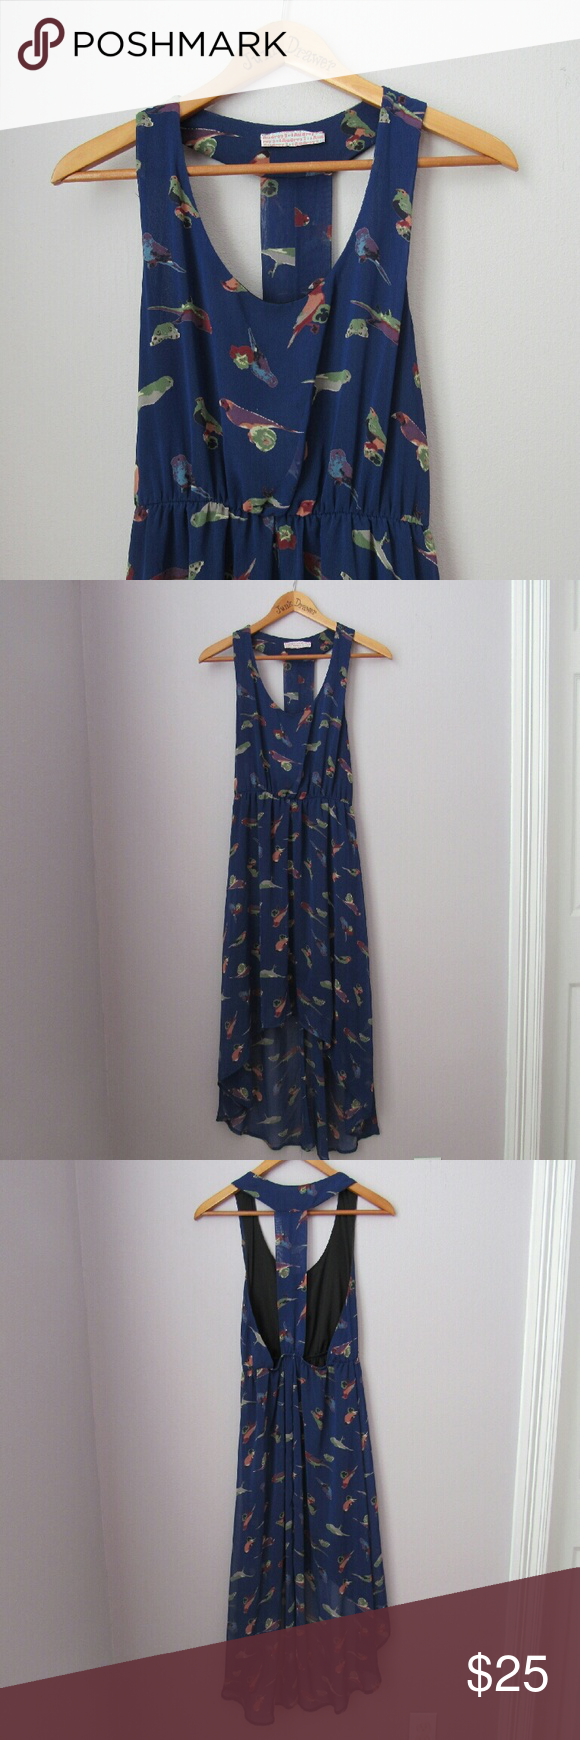 """Bird Print High Low Maxi So fun and unique! Colorful birds in a blue background. Slightly high low. Poly. Bust 15"""". Legnth 36 and 49"""" front and back. Elastic waist.   Bundle for best deals! Hundreds of items available for discounted bundles! You can get lots of items for a low price and one shipping fee!  Follow on IG: @the.junk.drawer Audrey 3+1 Dresses High Low"""